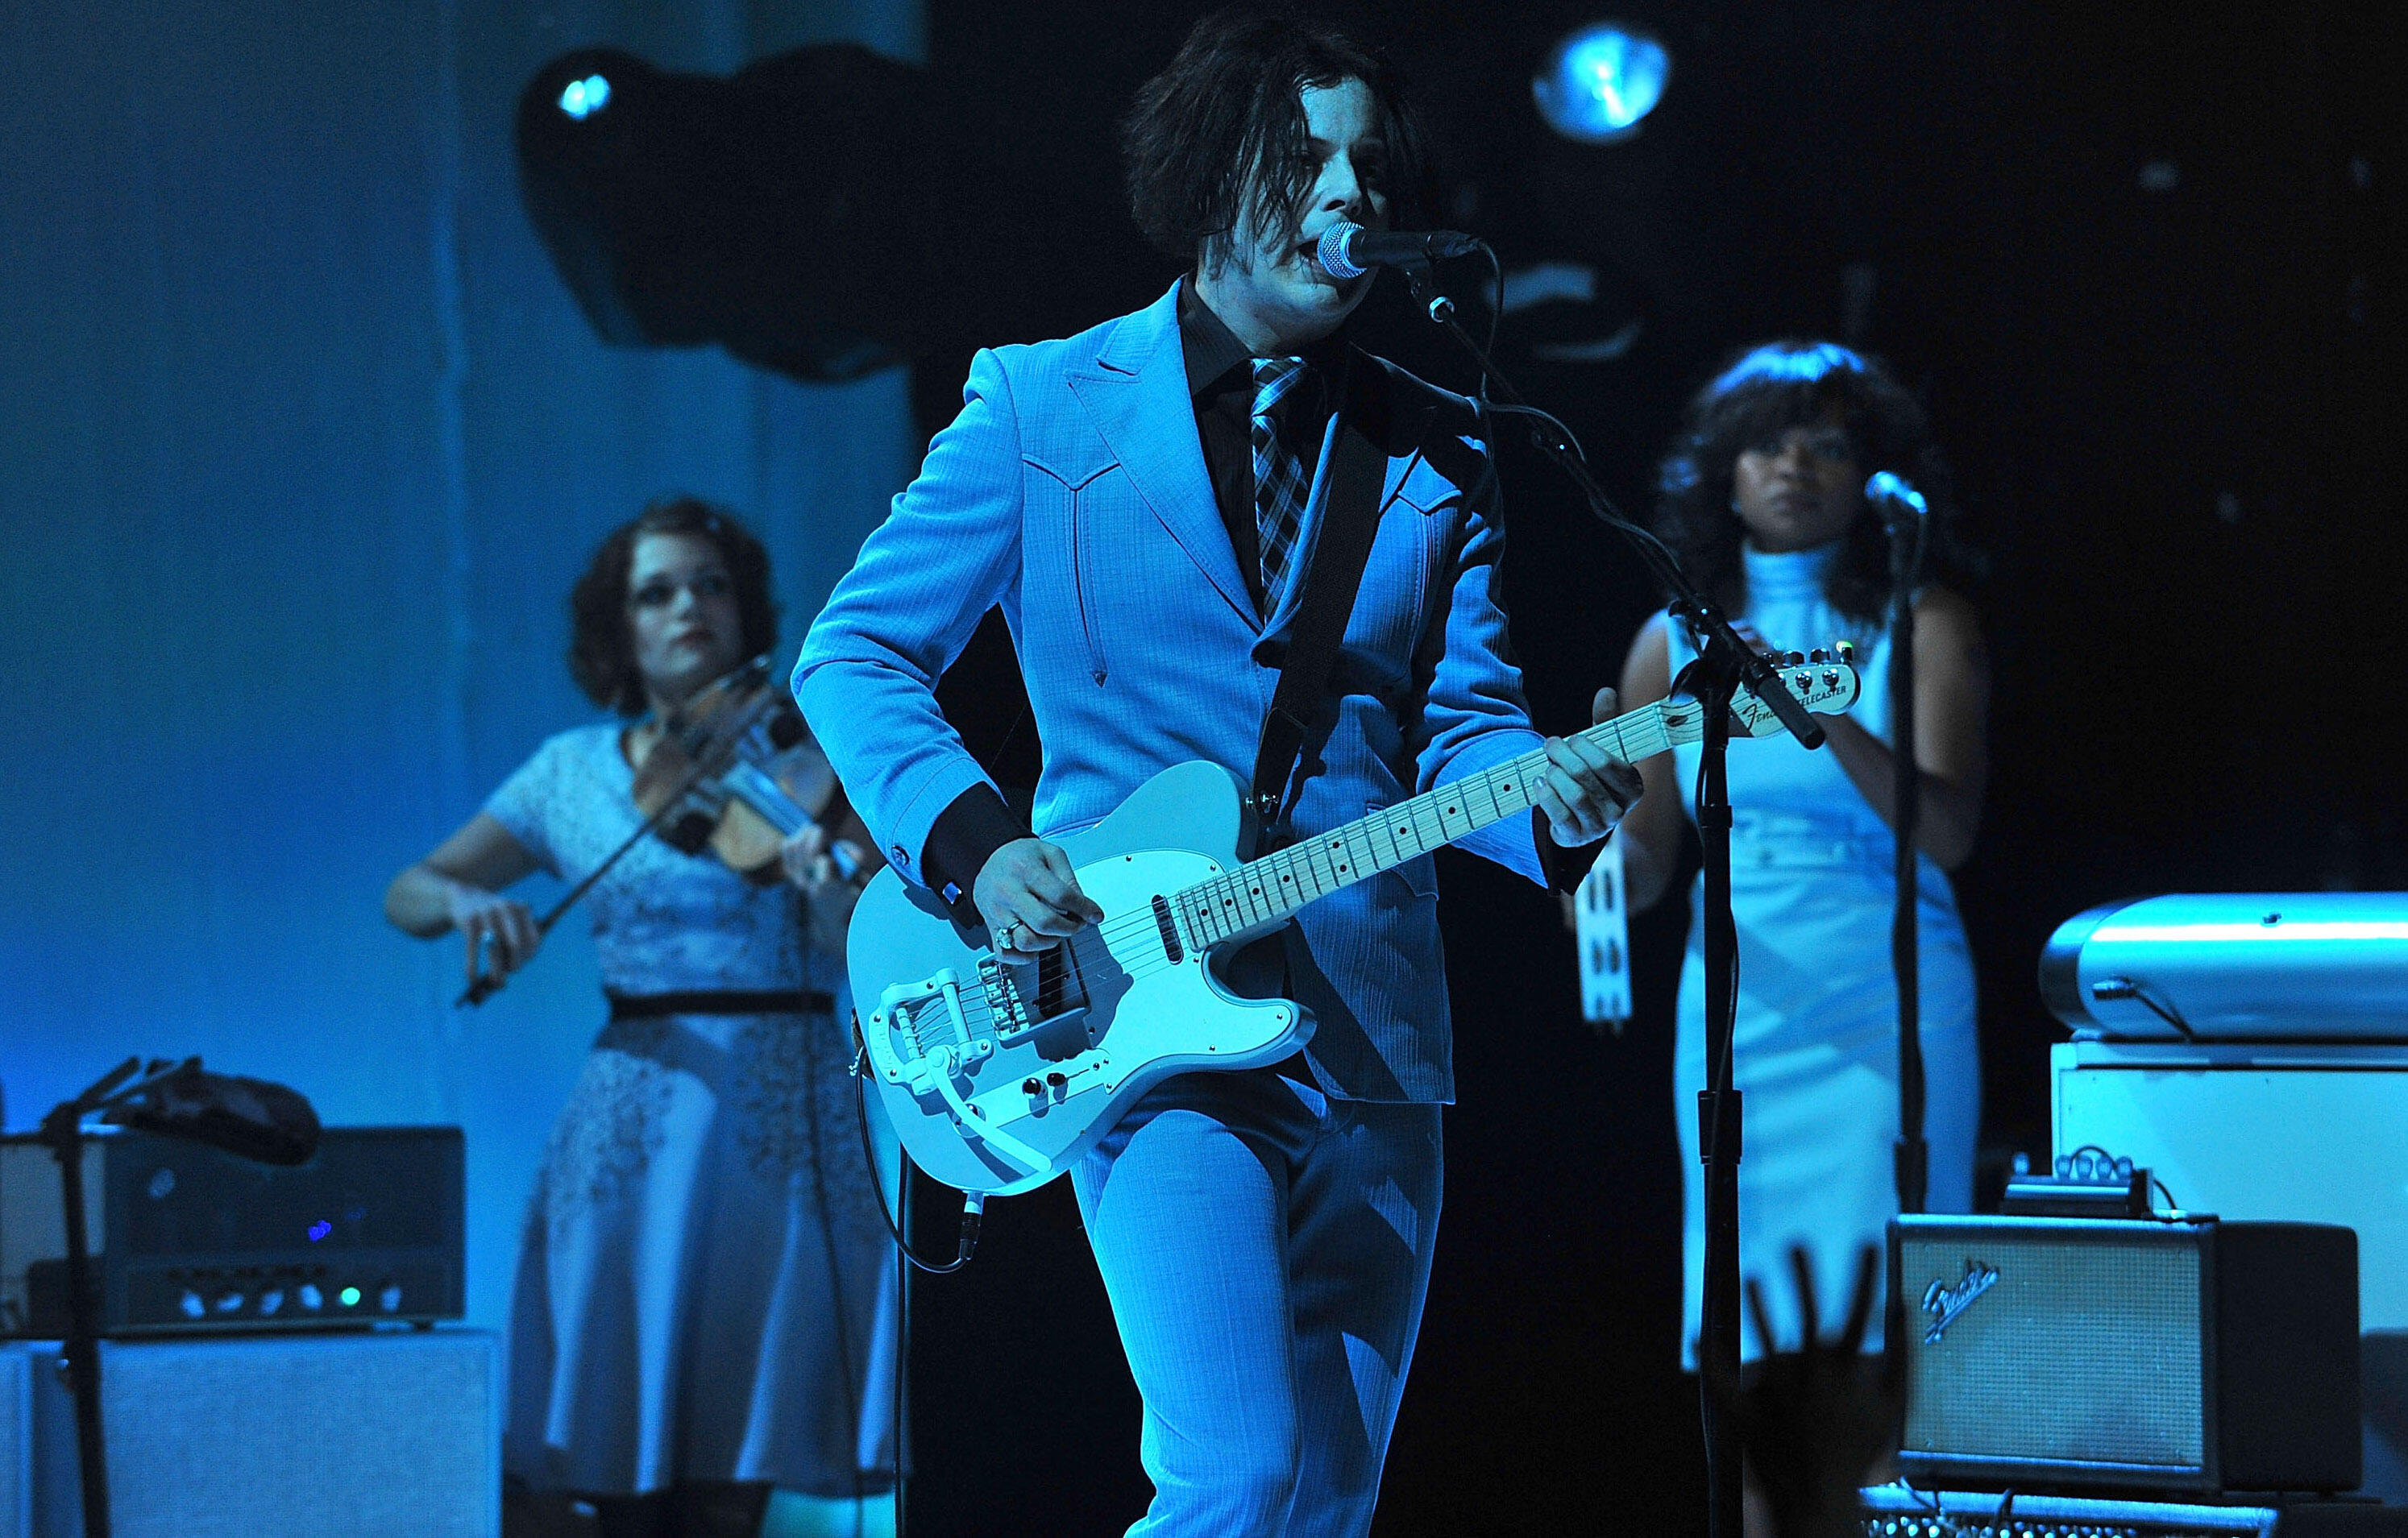 Jack White Sings the Polish Birthday Song to His Mother at a Warsaw Concert